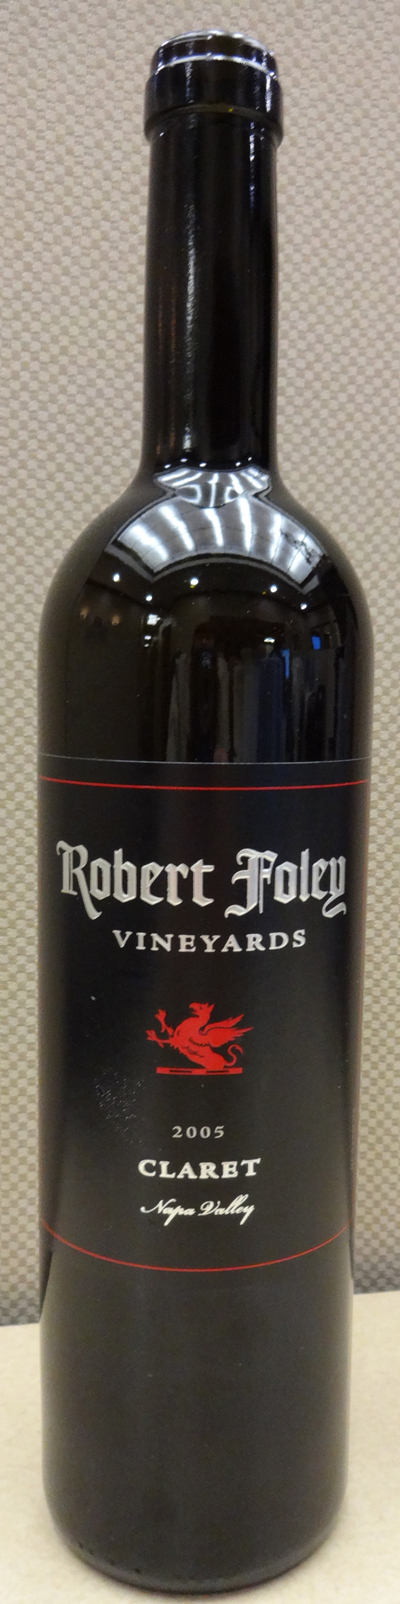 Robert-Foley-bottle